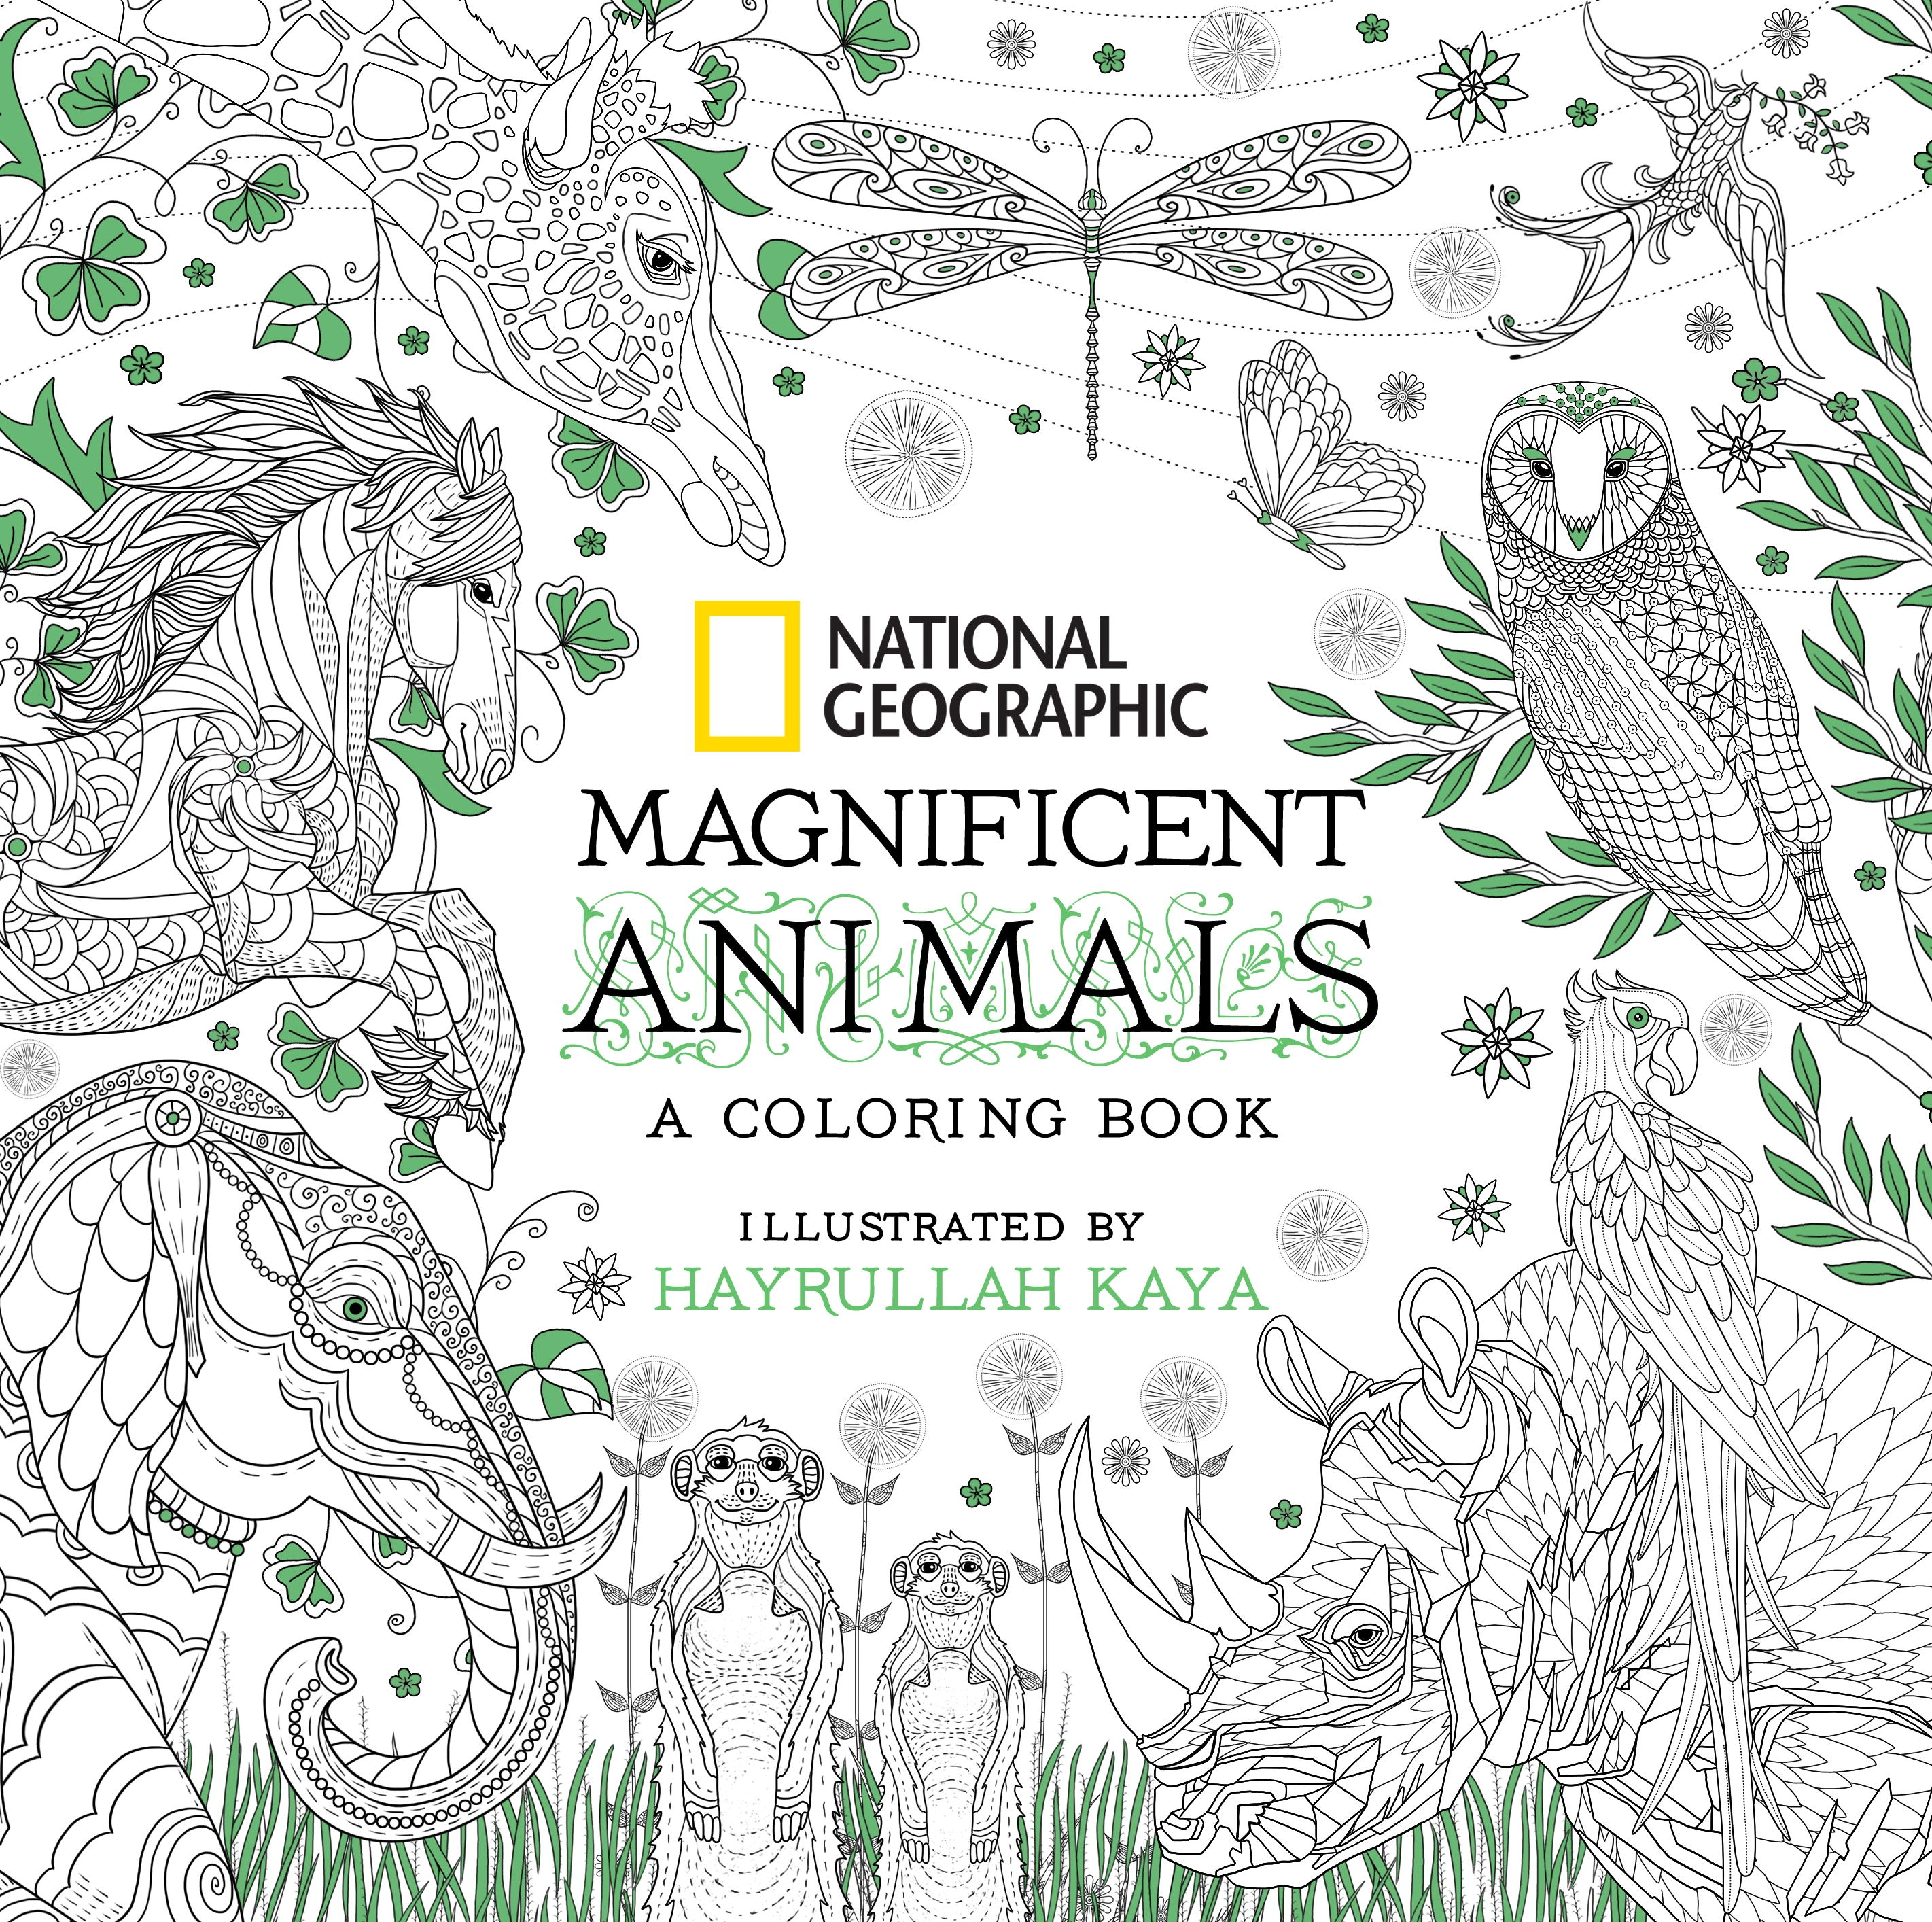 - National Geographic Magnificent Animals An Adult Coloring Book By